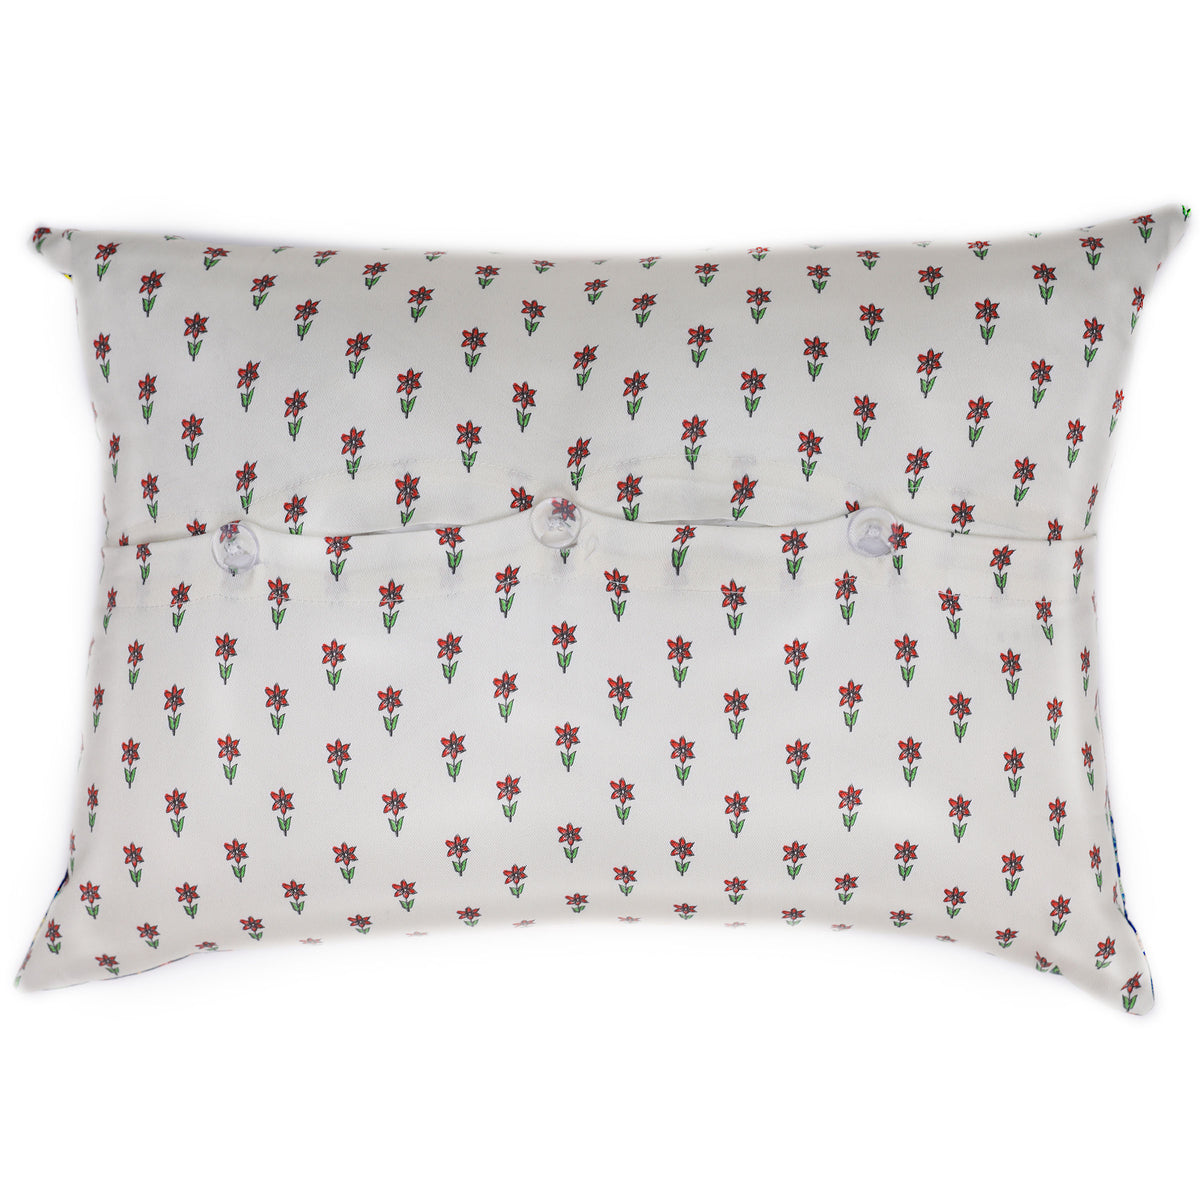 Groove - Cushion Cover